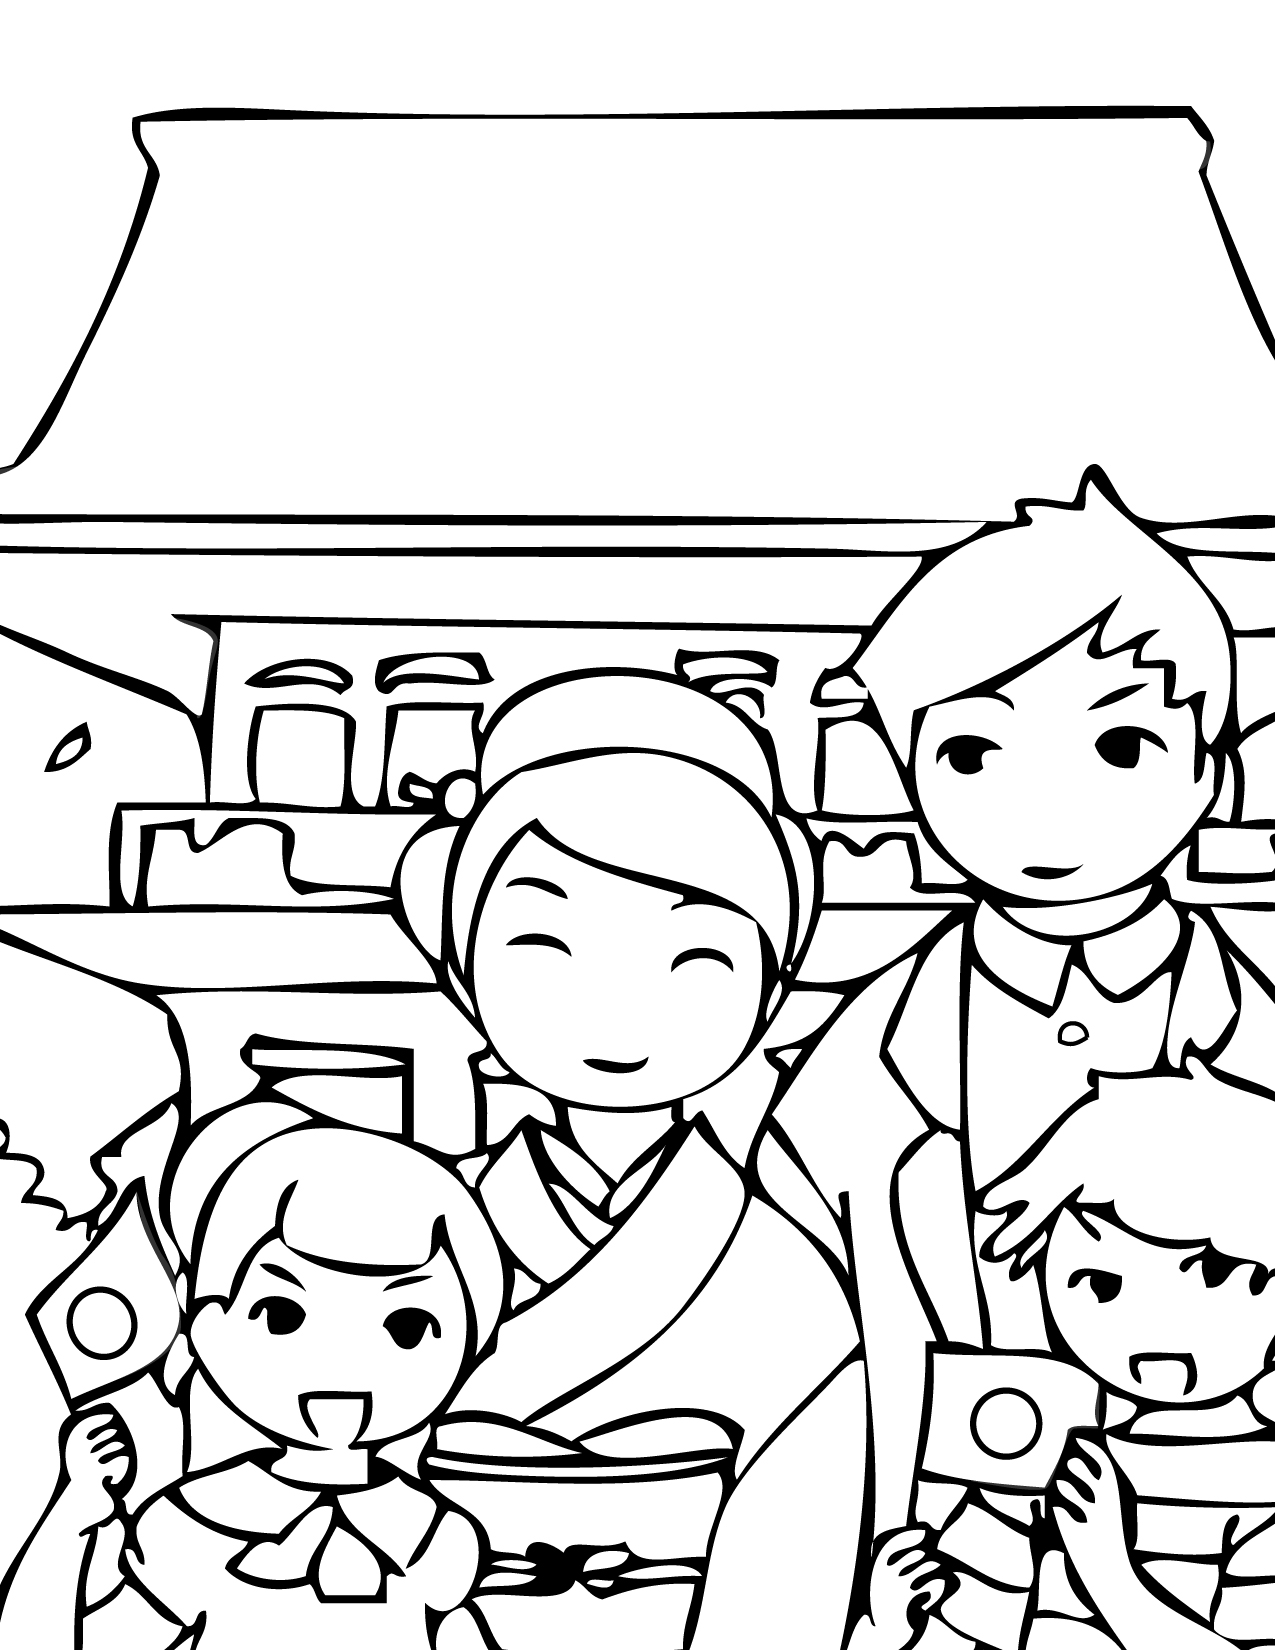 Japanese Geisha Coloring Pages At Getcolorings